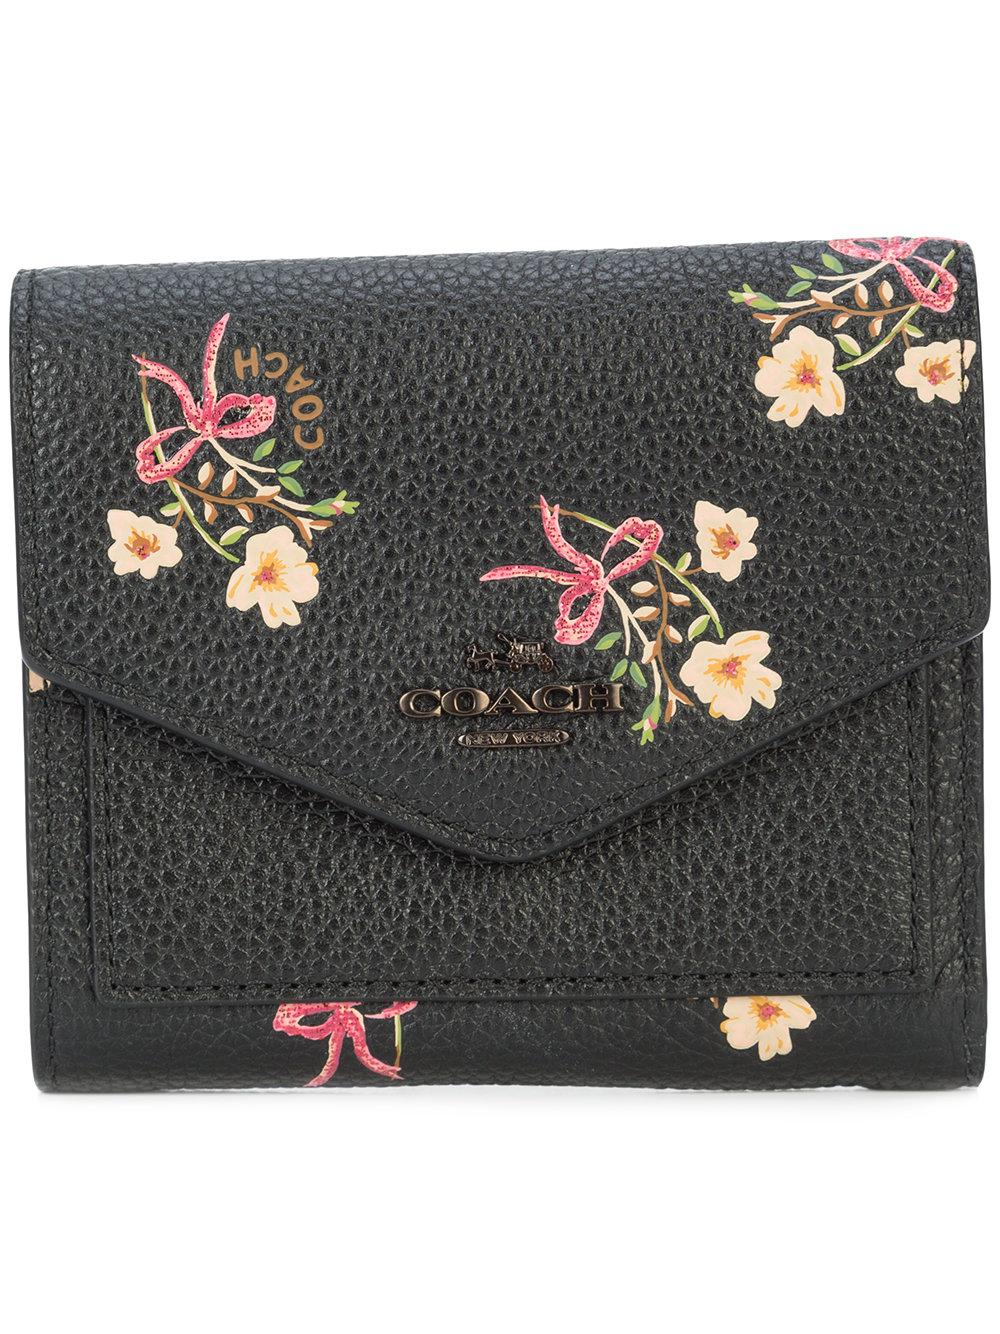 Coach Floral Bow Small Wallet